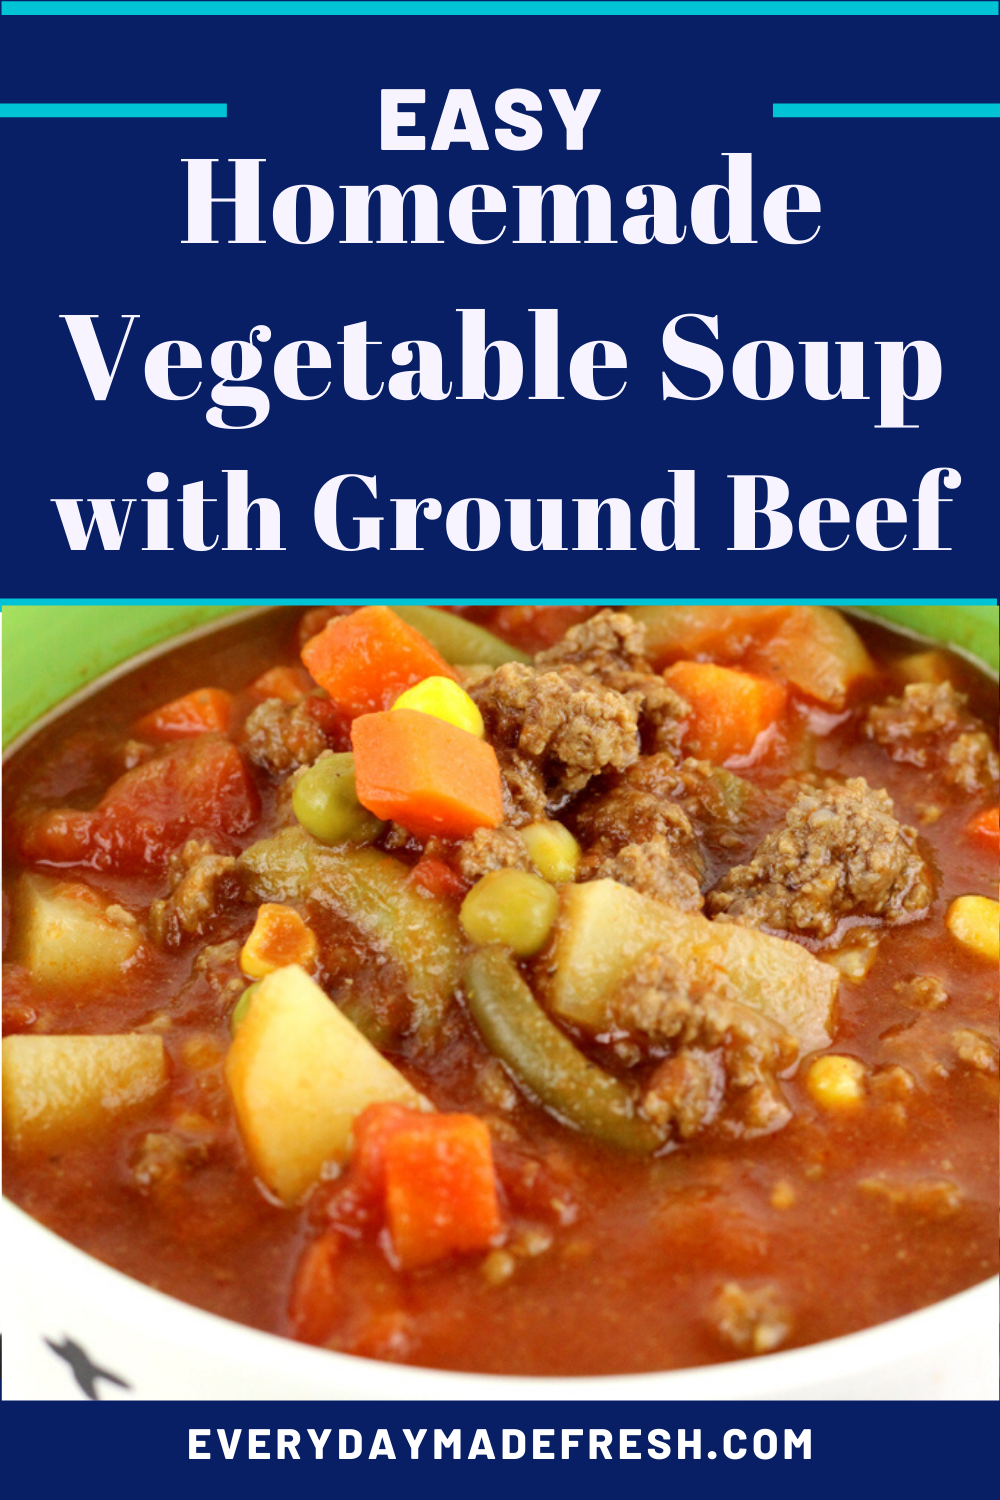 Old Fashioned Vegetable Soup Recipe In 2020 Homemade Vegetable Soups Quick Beef Recipes Vegetable Soup